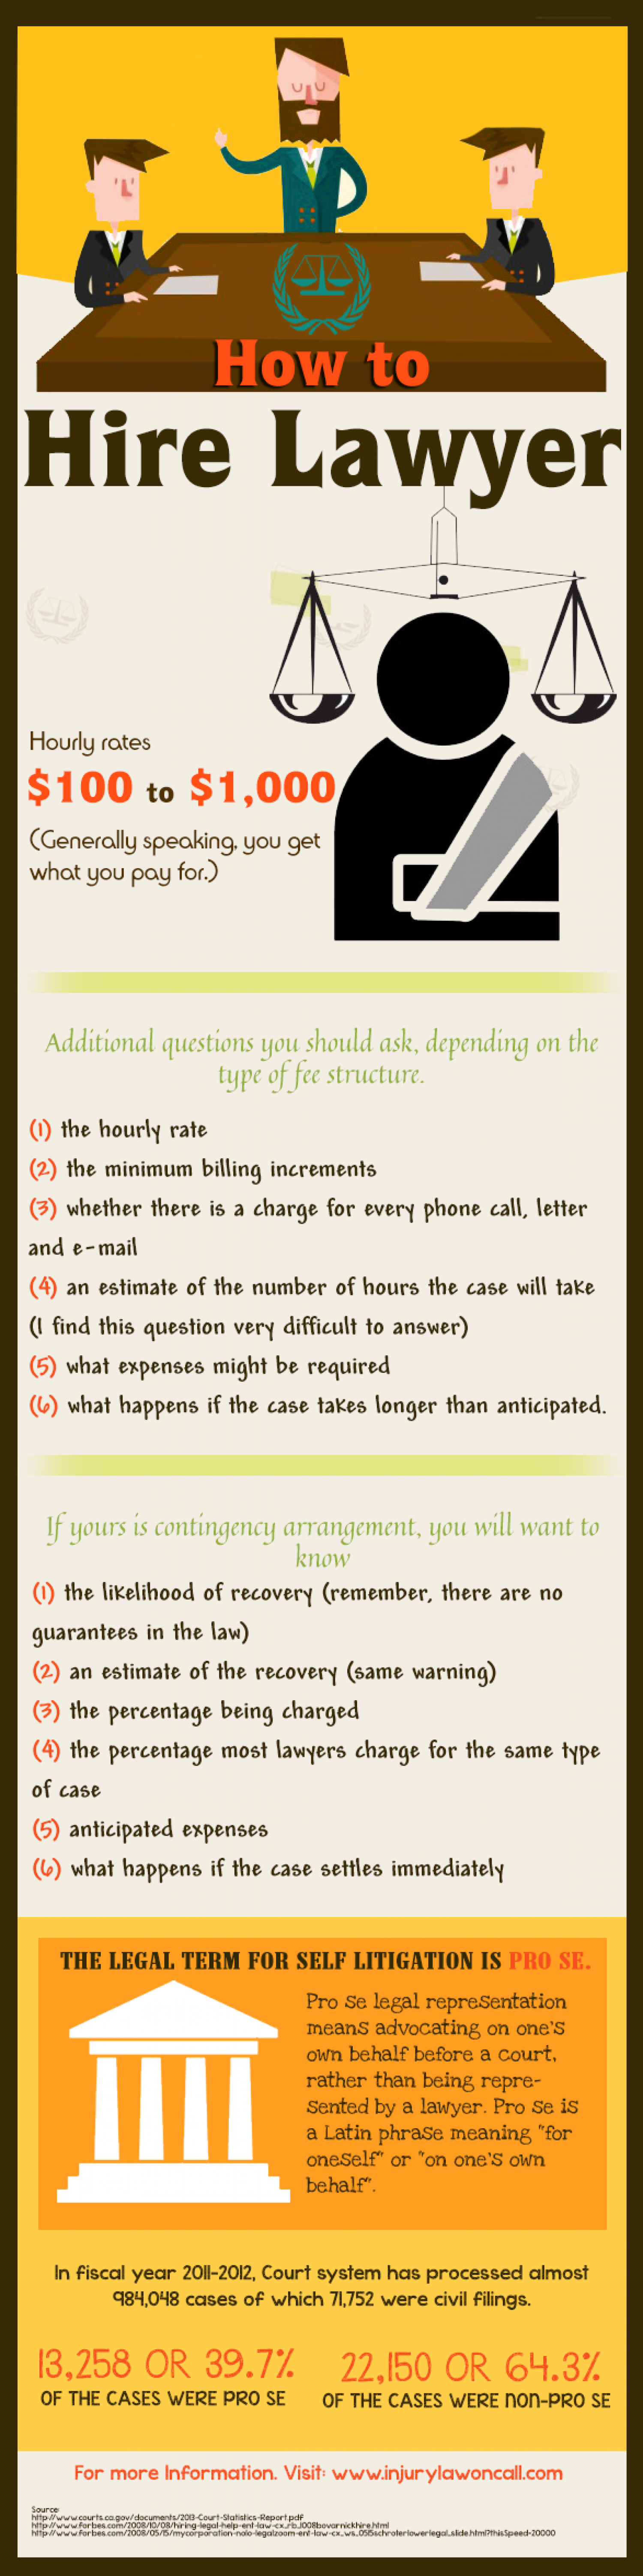 How To Hire A Lawyer Infographic